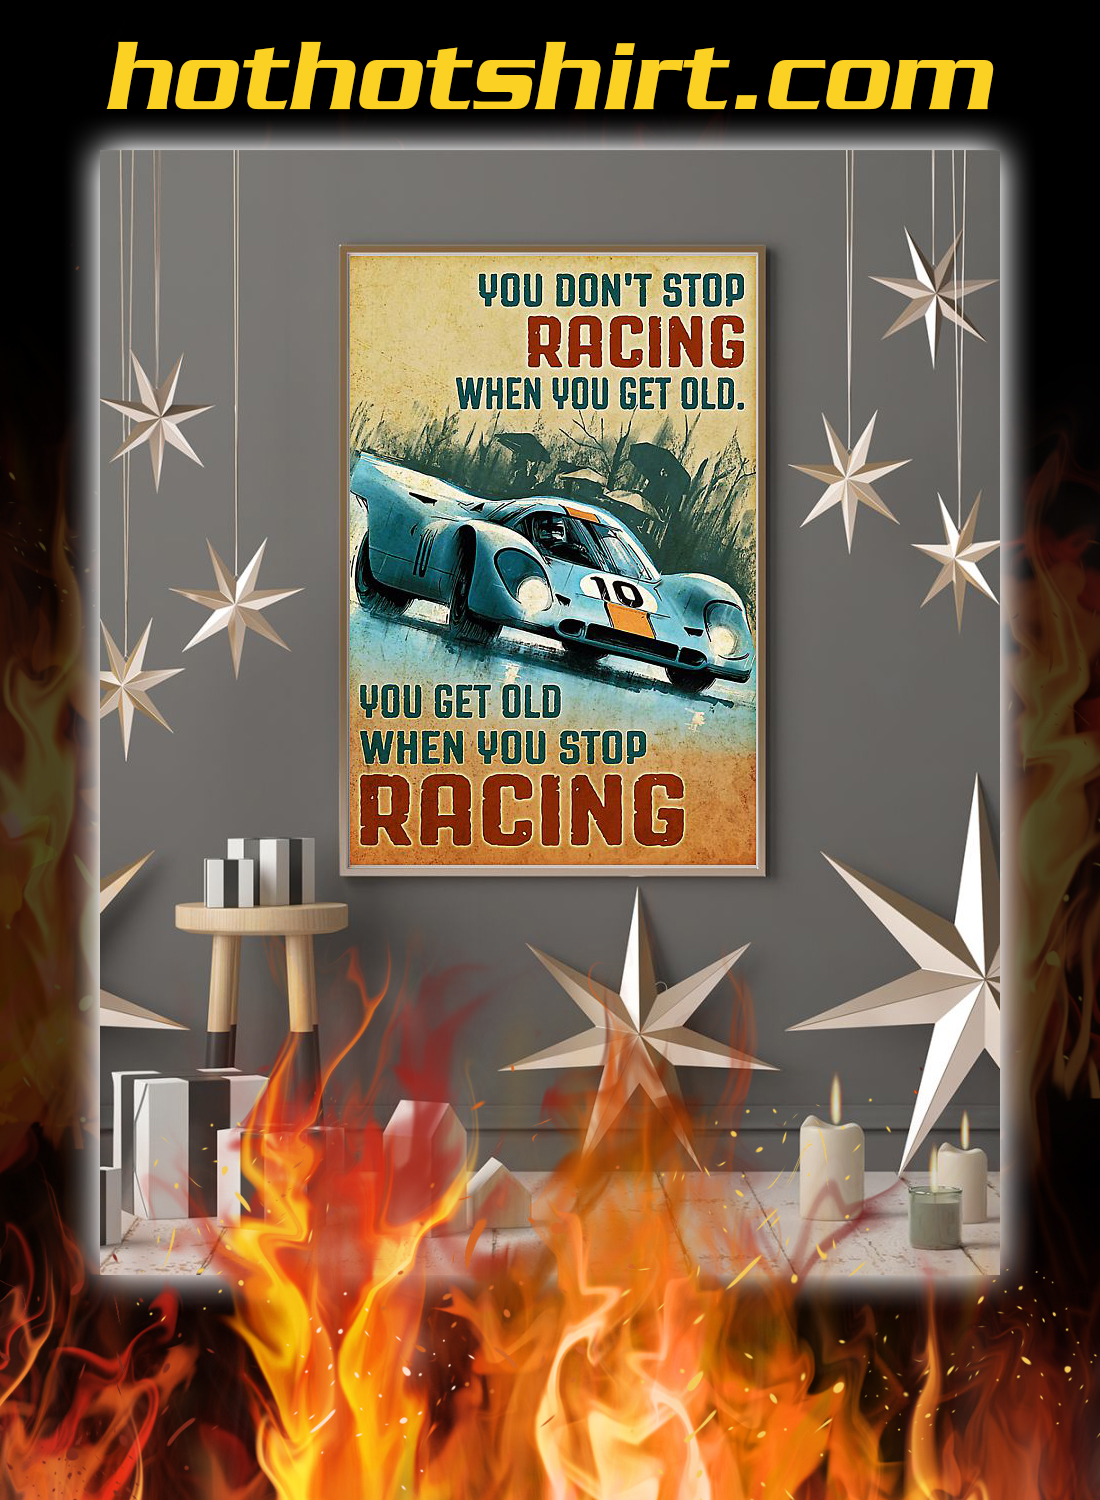 You don't stop racing when you get old poster 2